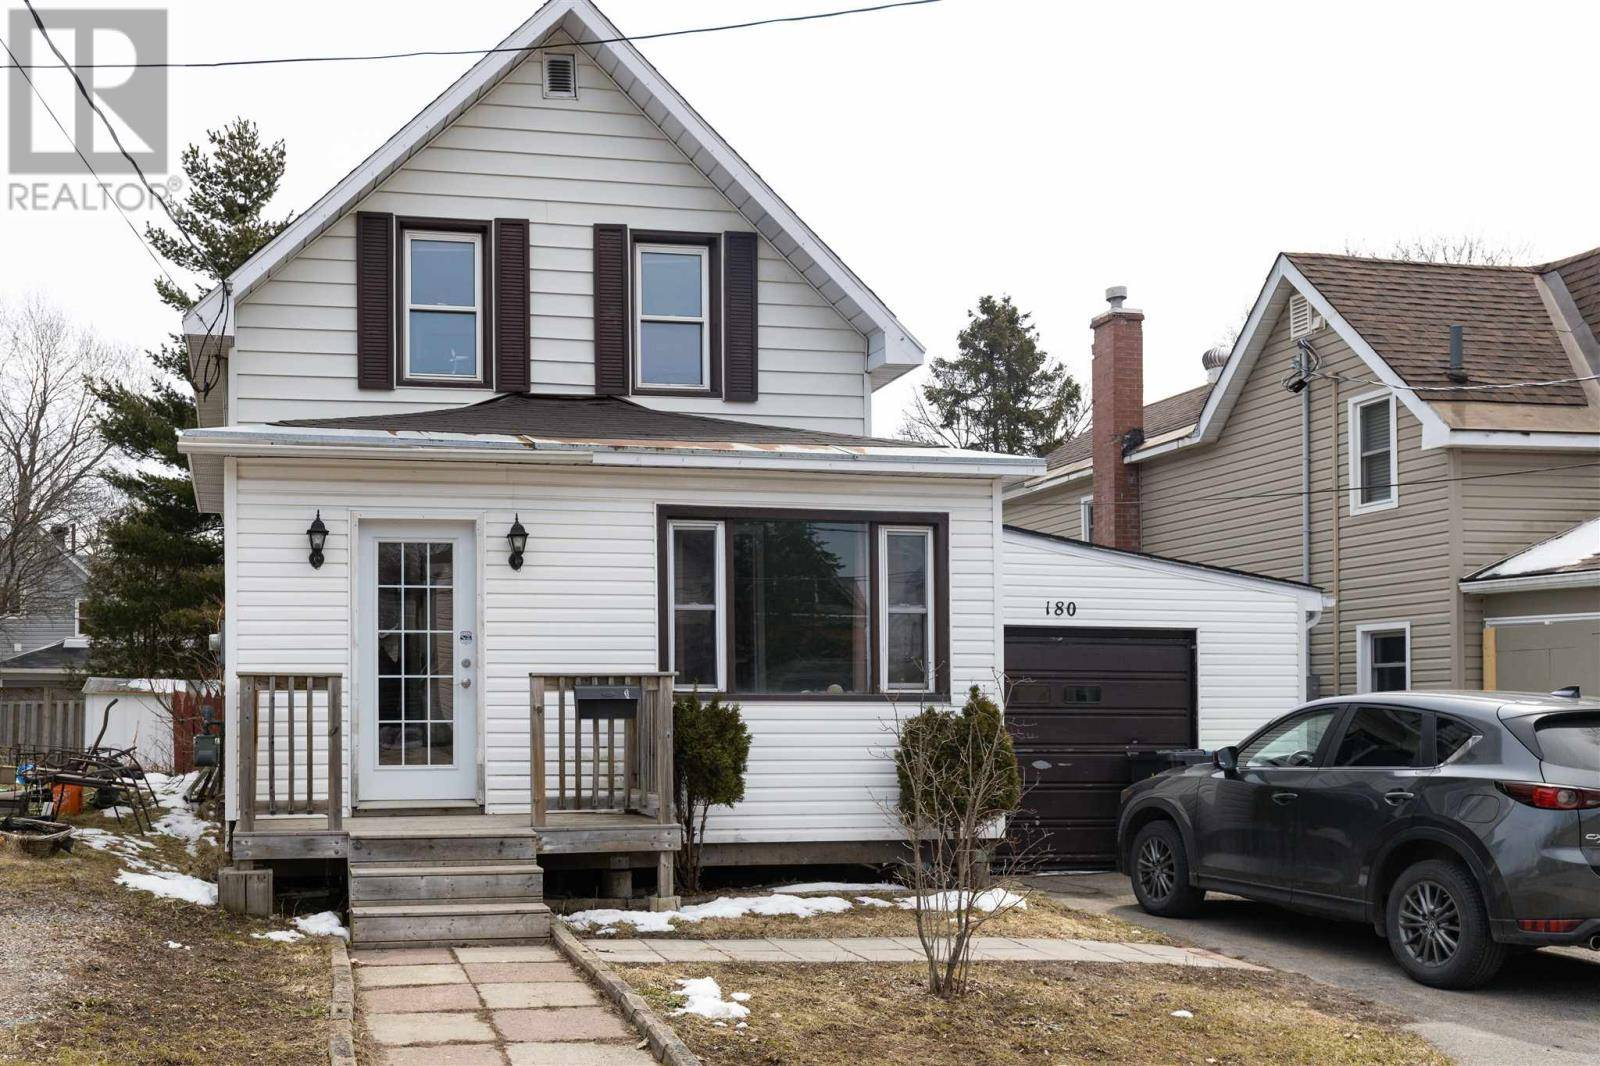 House for sale at 180 Woodward Ave Sault Ste. Marie Ontario - MLS: SM128339